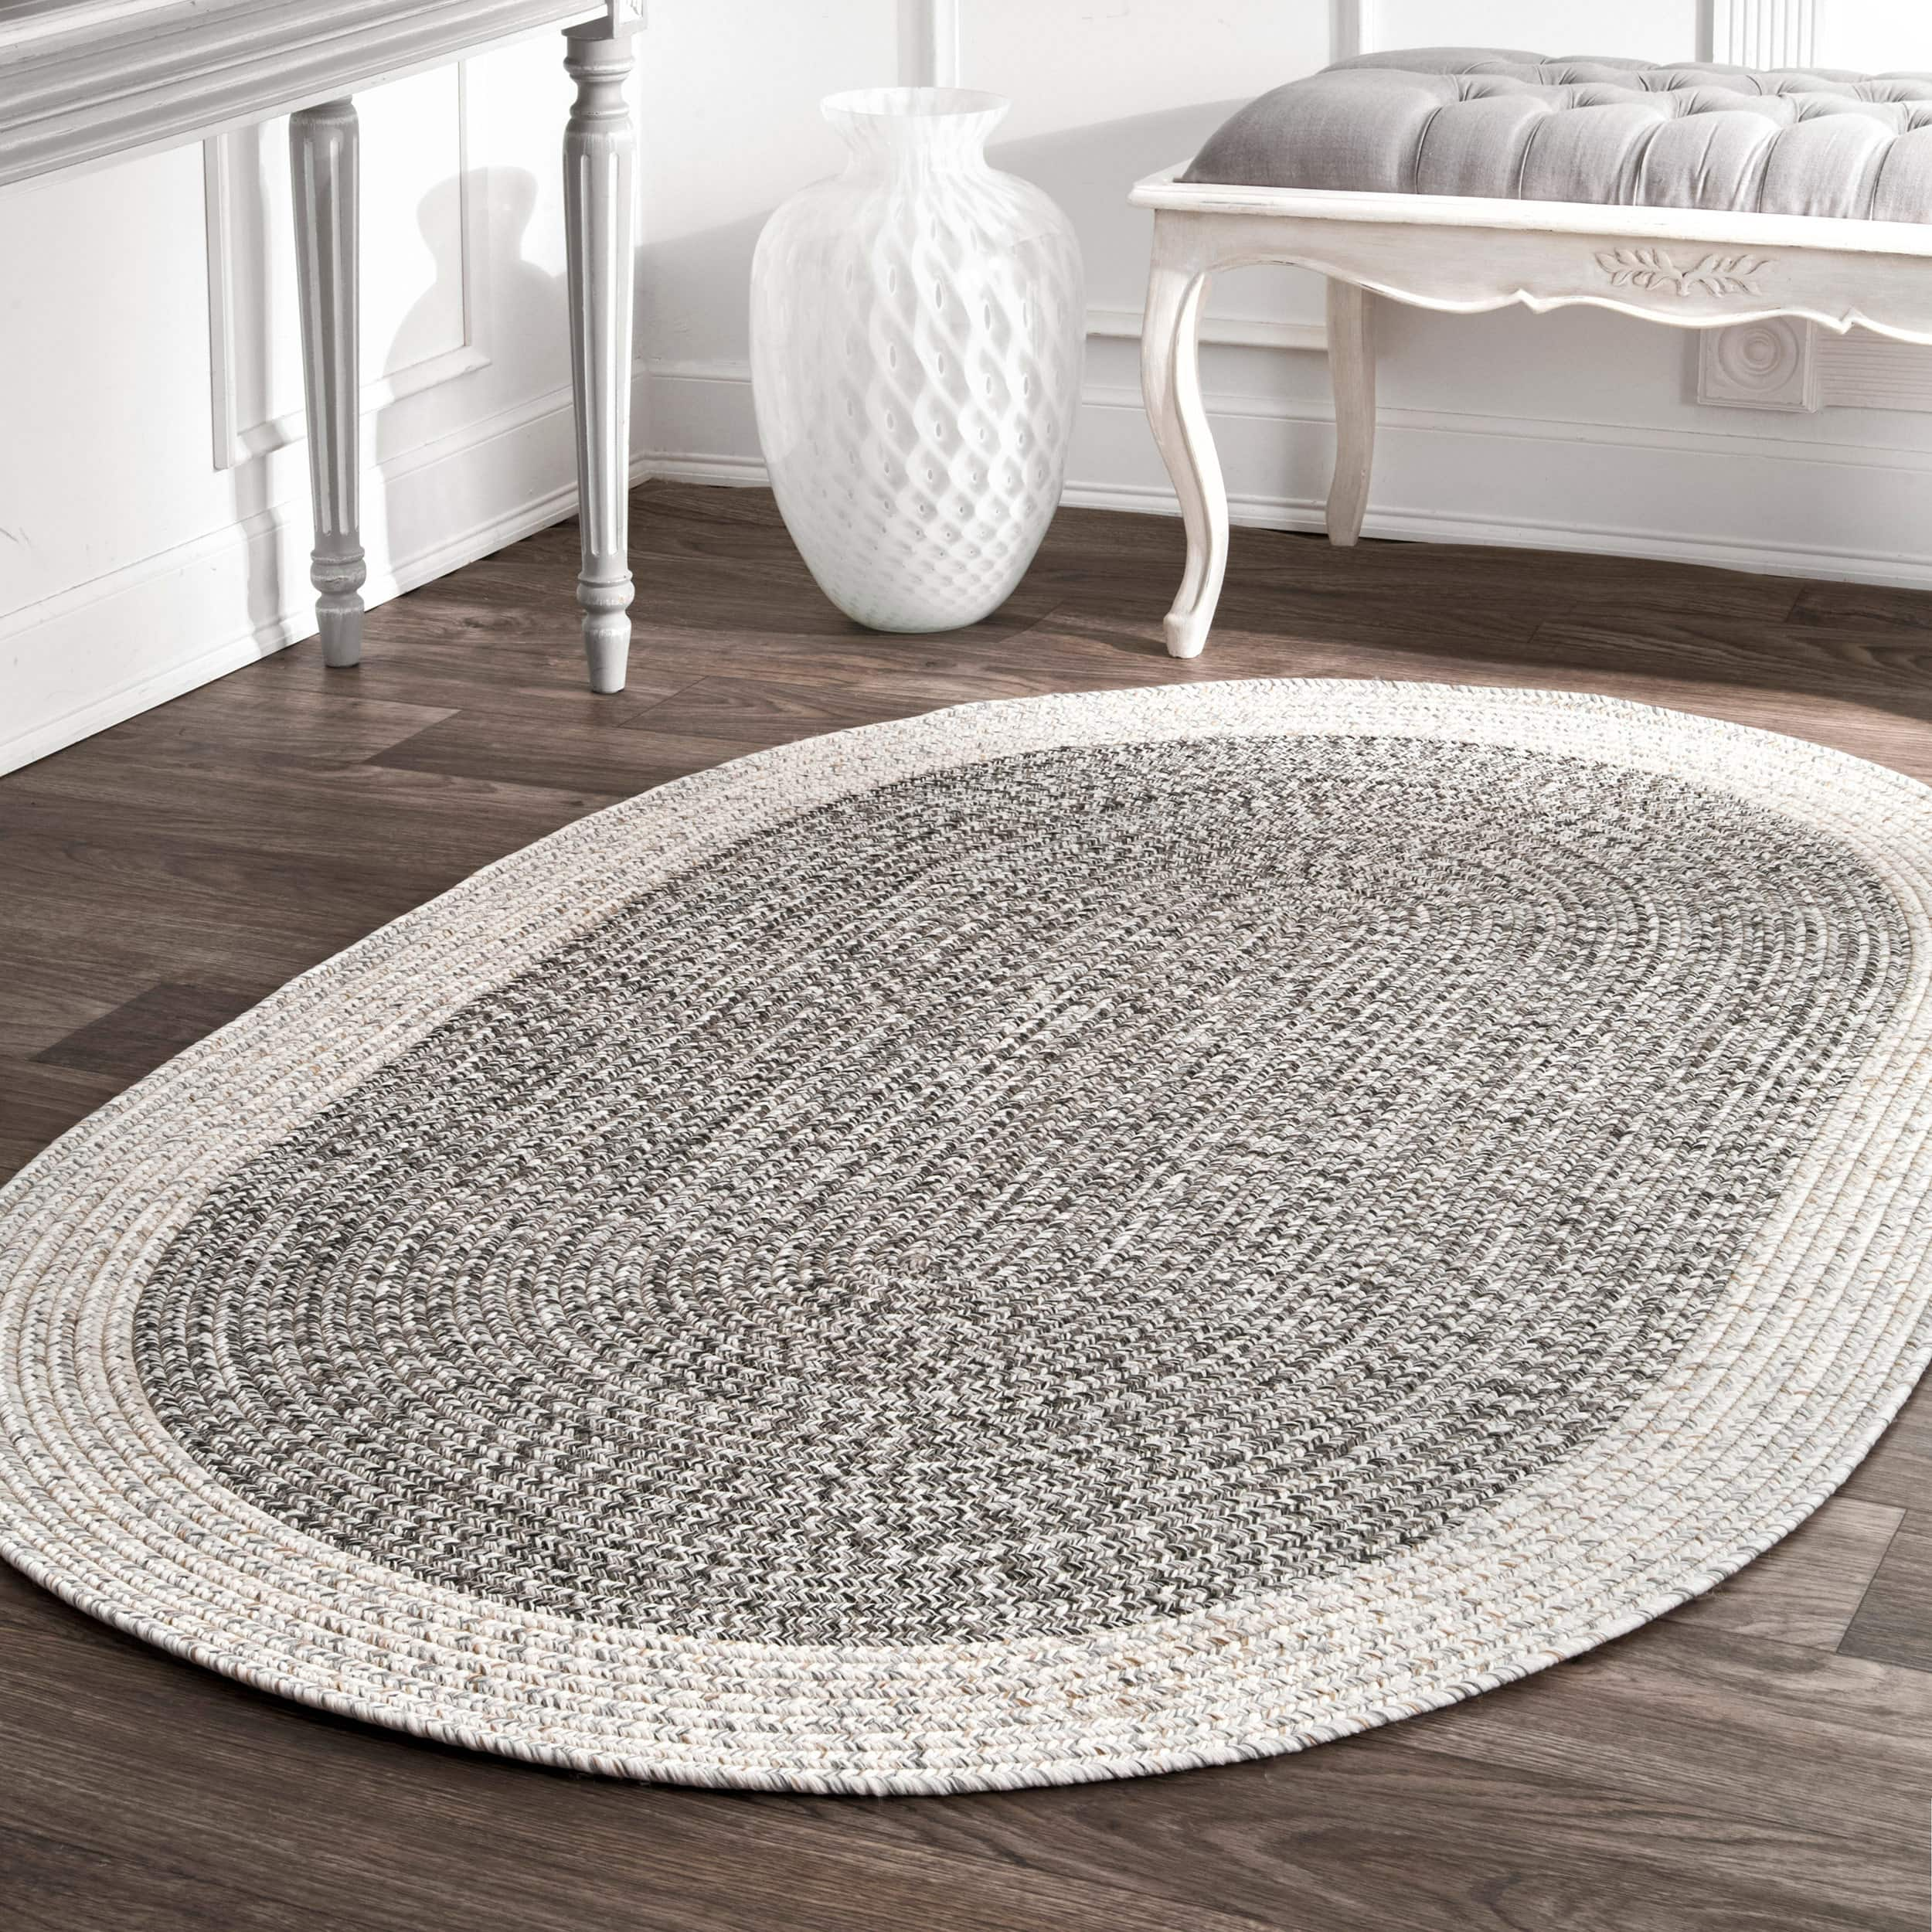 Round Outdoor Rugs For Patios: Buy Round, Oval & Square Area Rugs Online At Overstock.com